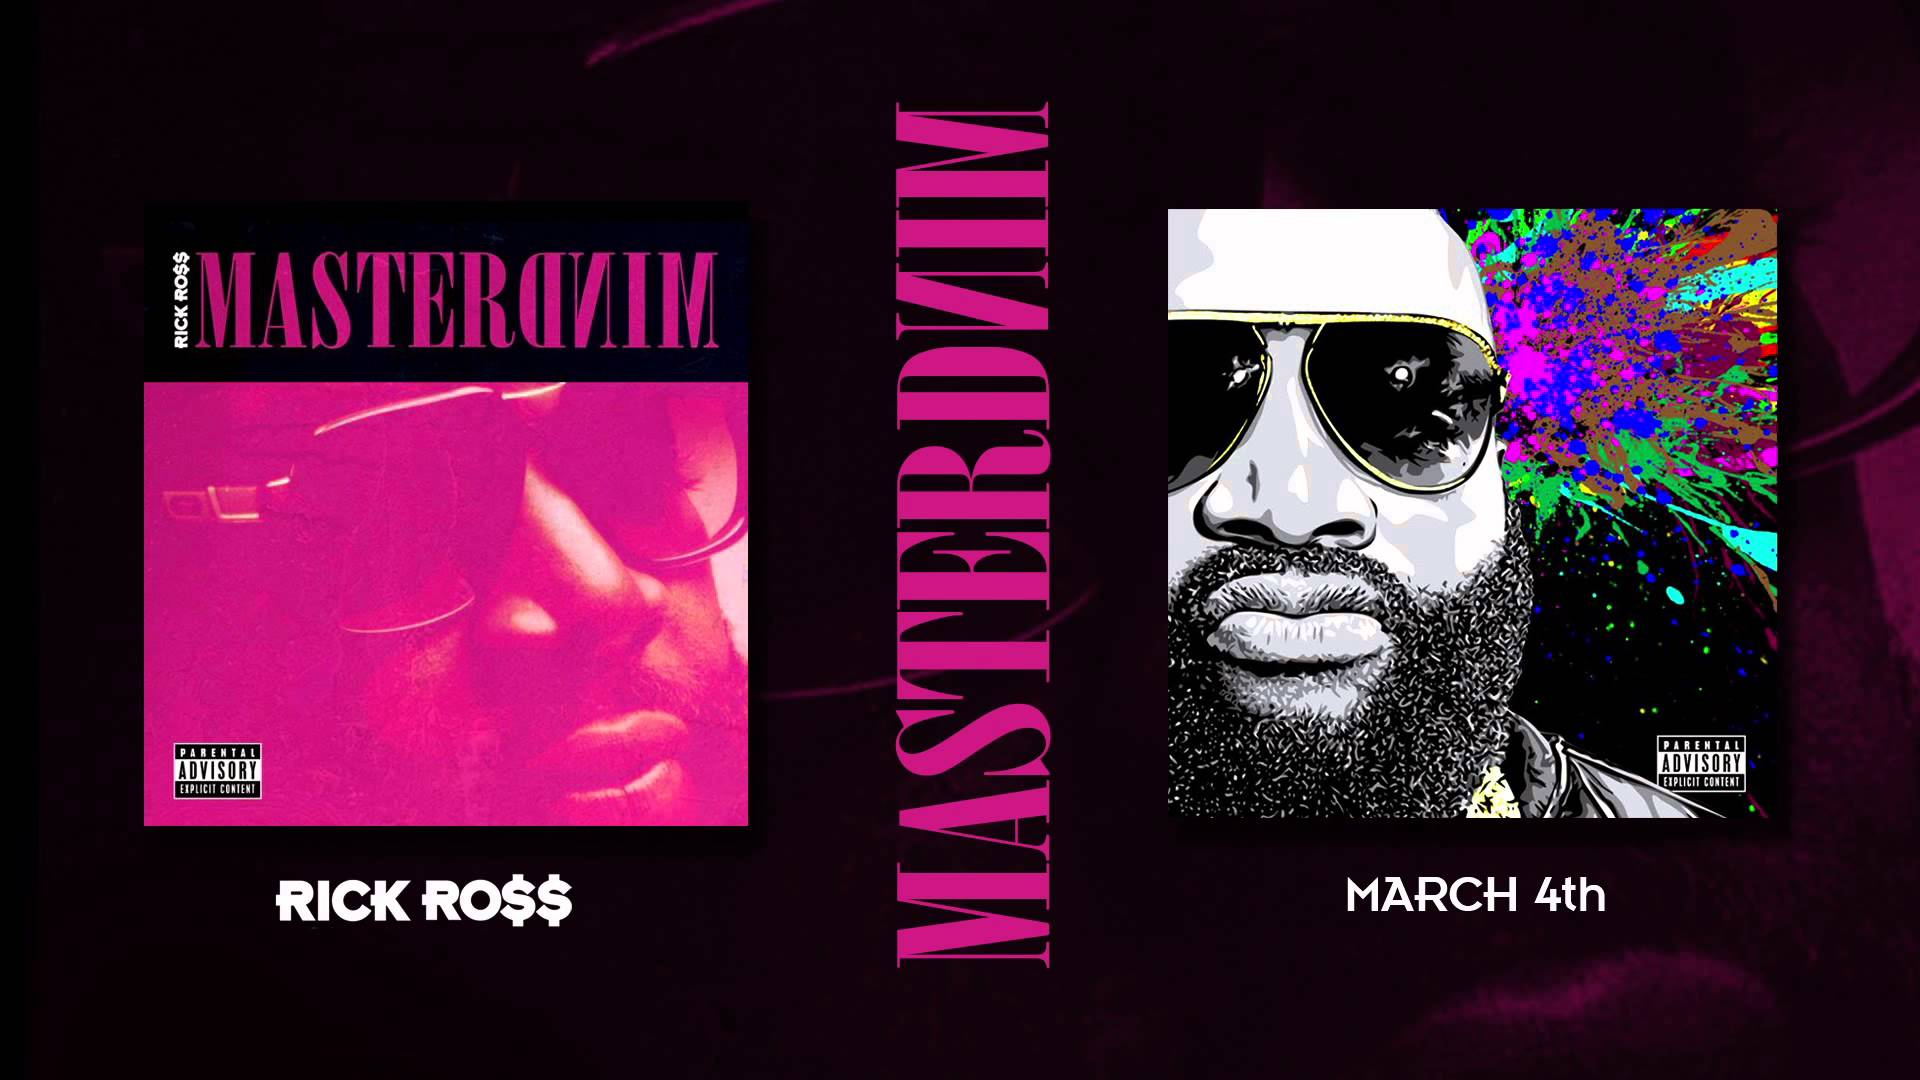 News: Rick Ross Reveals Huge Features On 'Mastermind' Tracklist